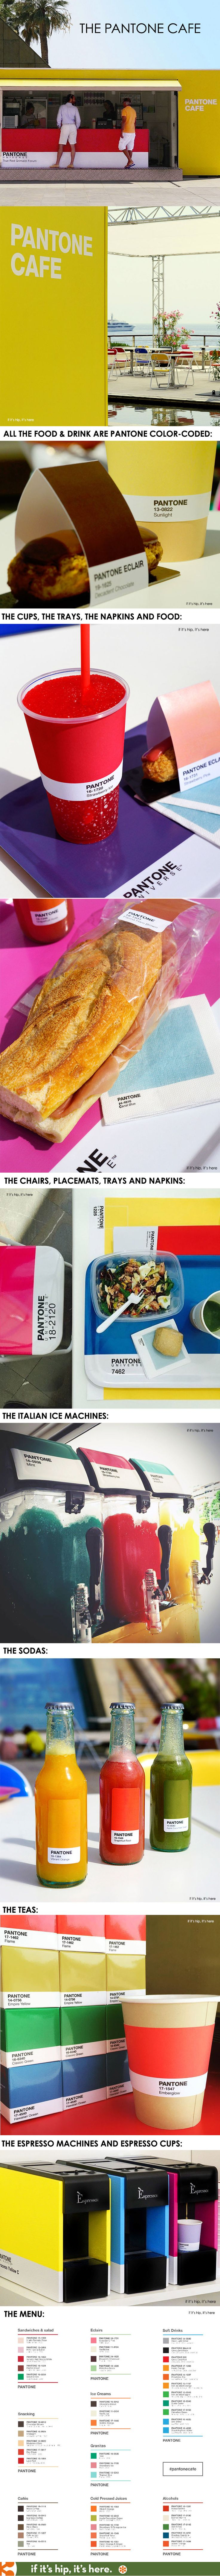 The Pop-Up Pantone Cafe has color-coded food and drink, colorful packaging, decor, design and branding.